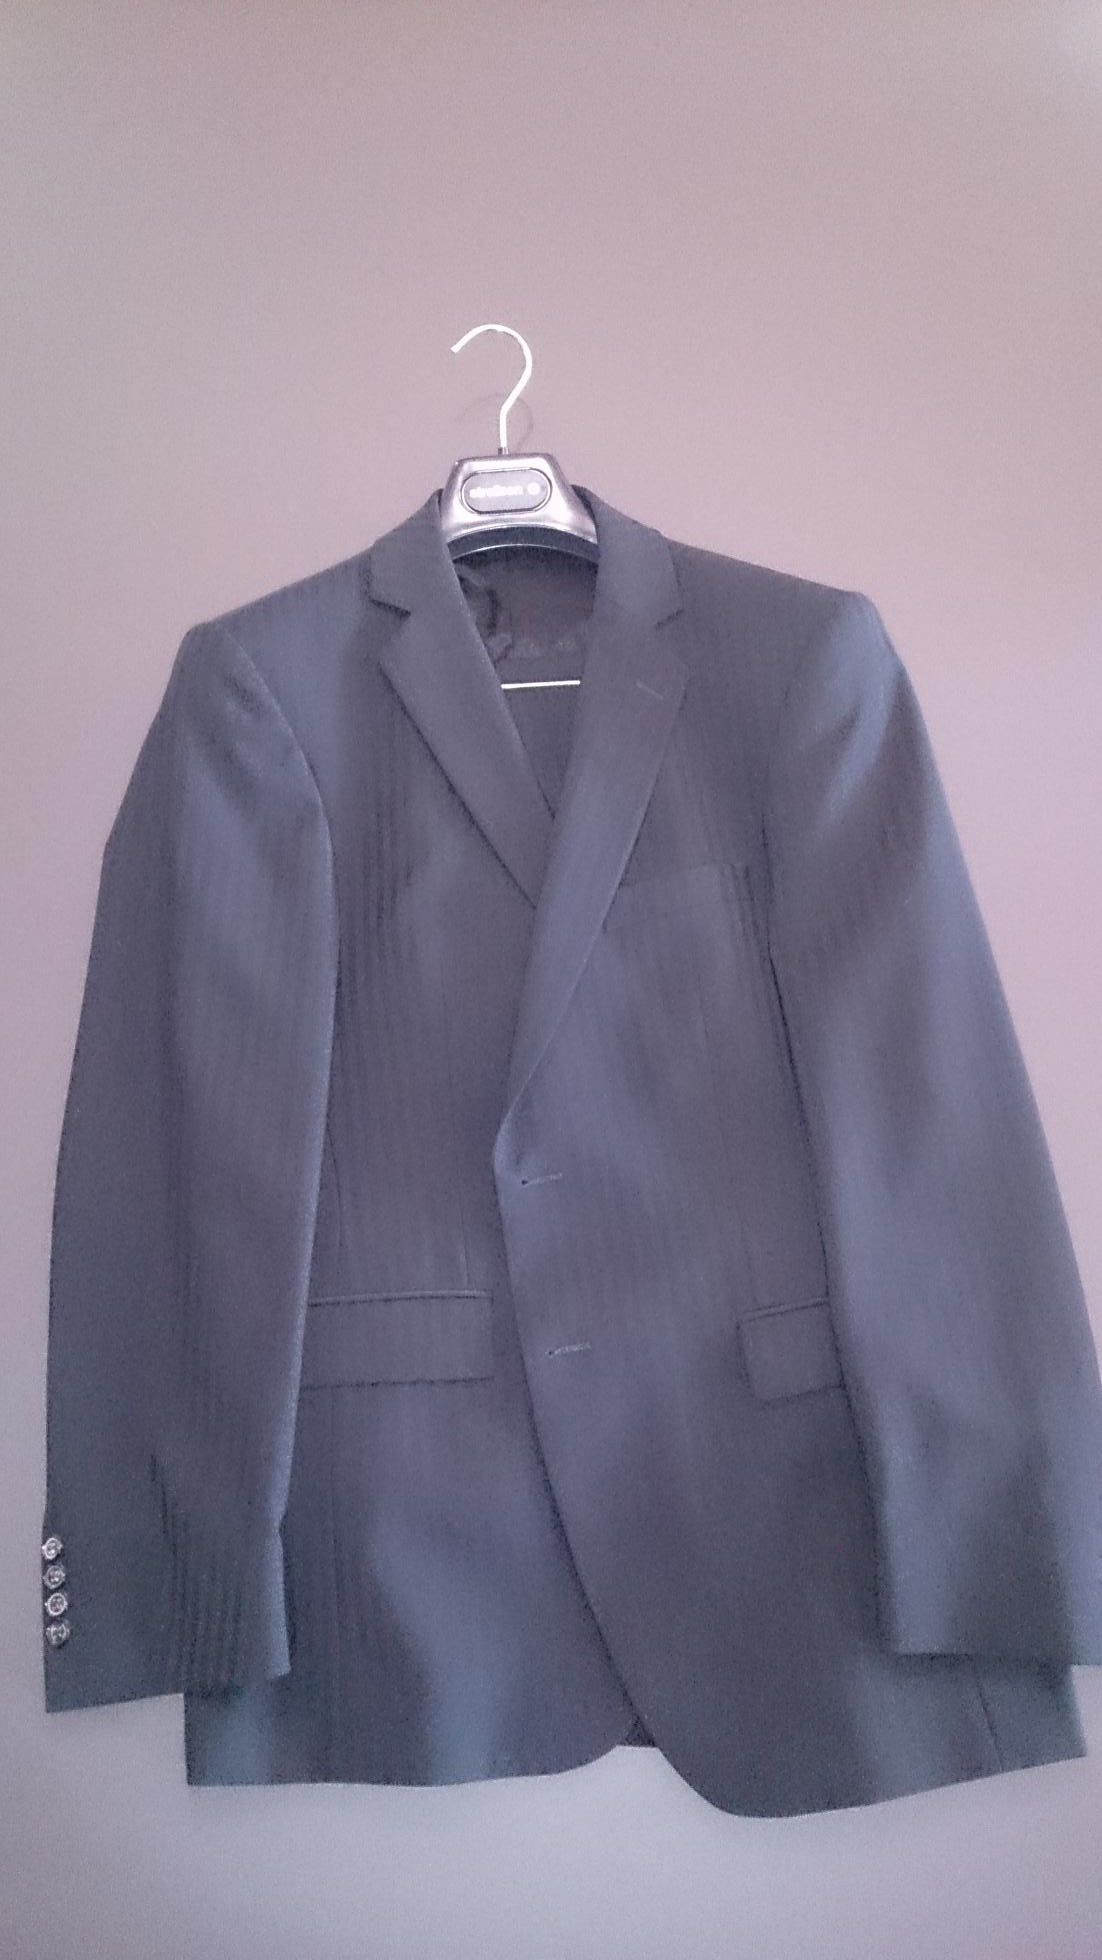 2015-11-30 Strellson Suit Jacket